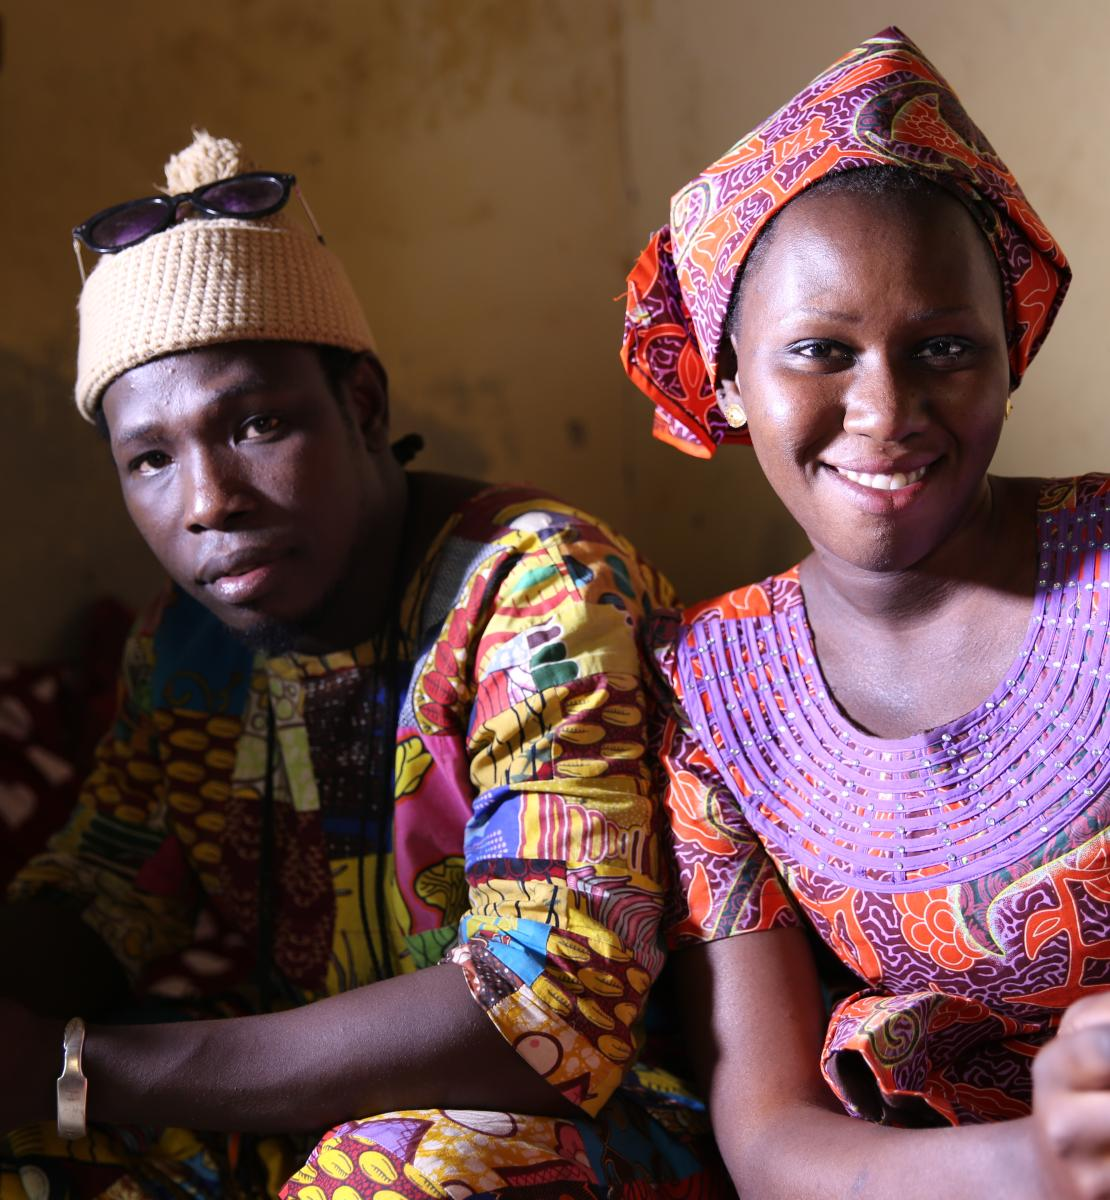 Two Senegalese youth, a young man and woman, proudly looking at the camera while holding their mobile phones.